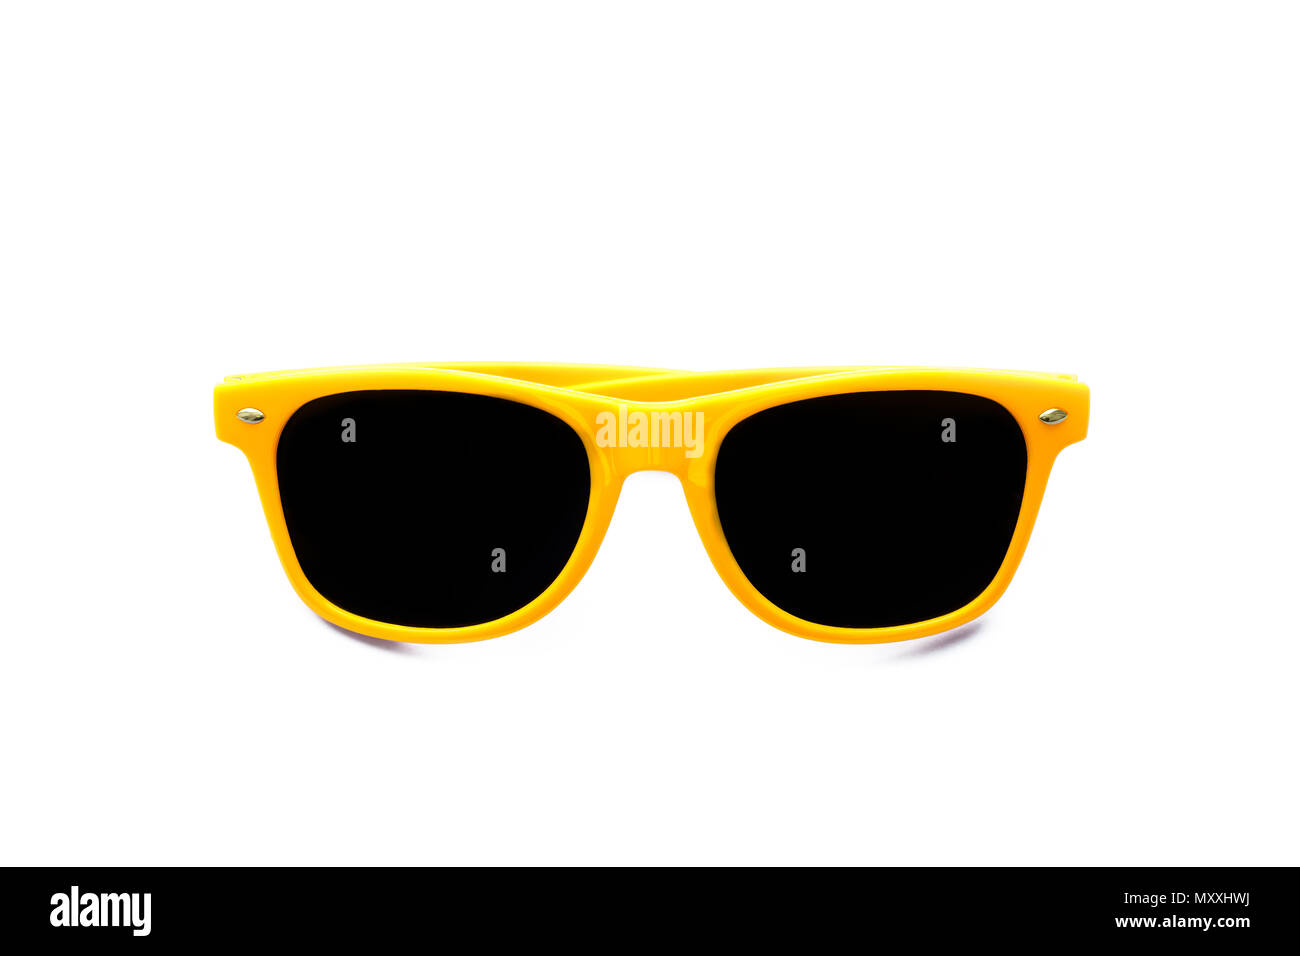 Summer yellow sunglasses isolated in seamless white background. Minimal design element for sun protection, hot days, tropical travel, summer vacations - Stock Image